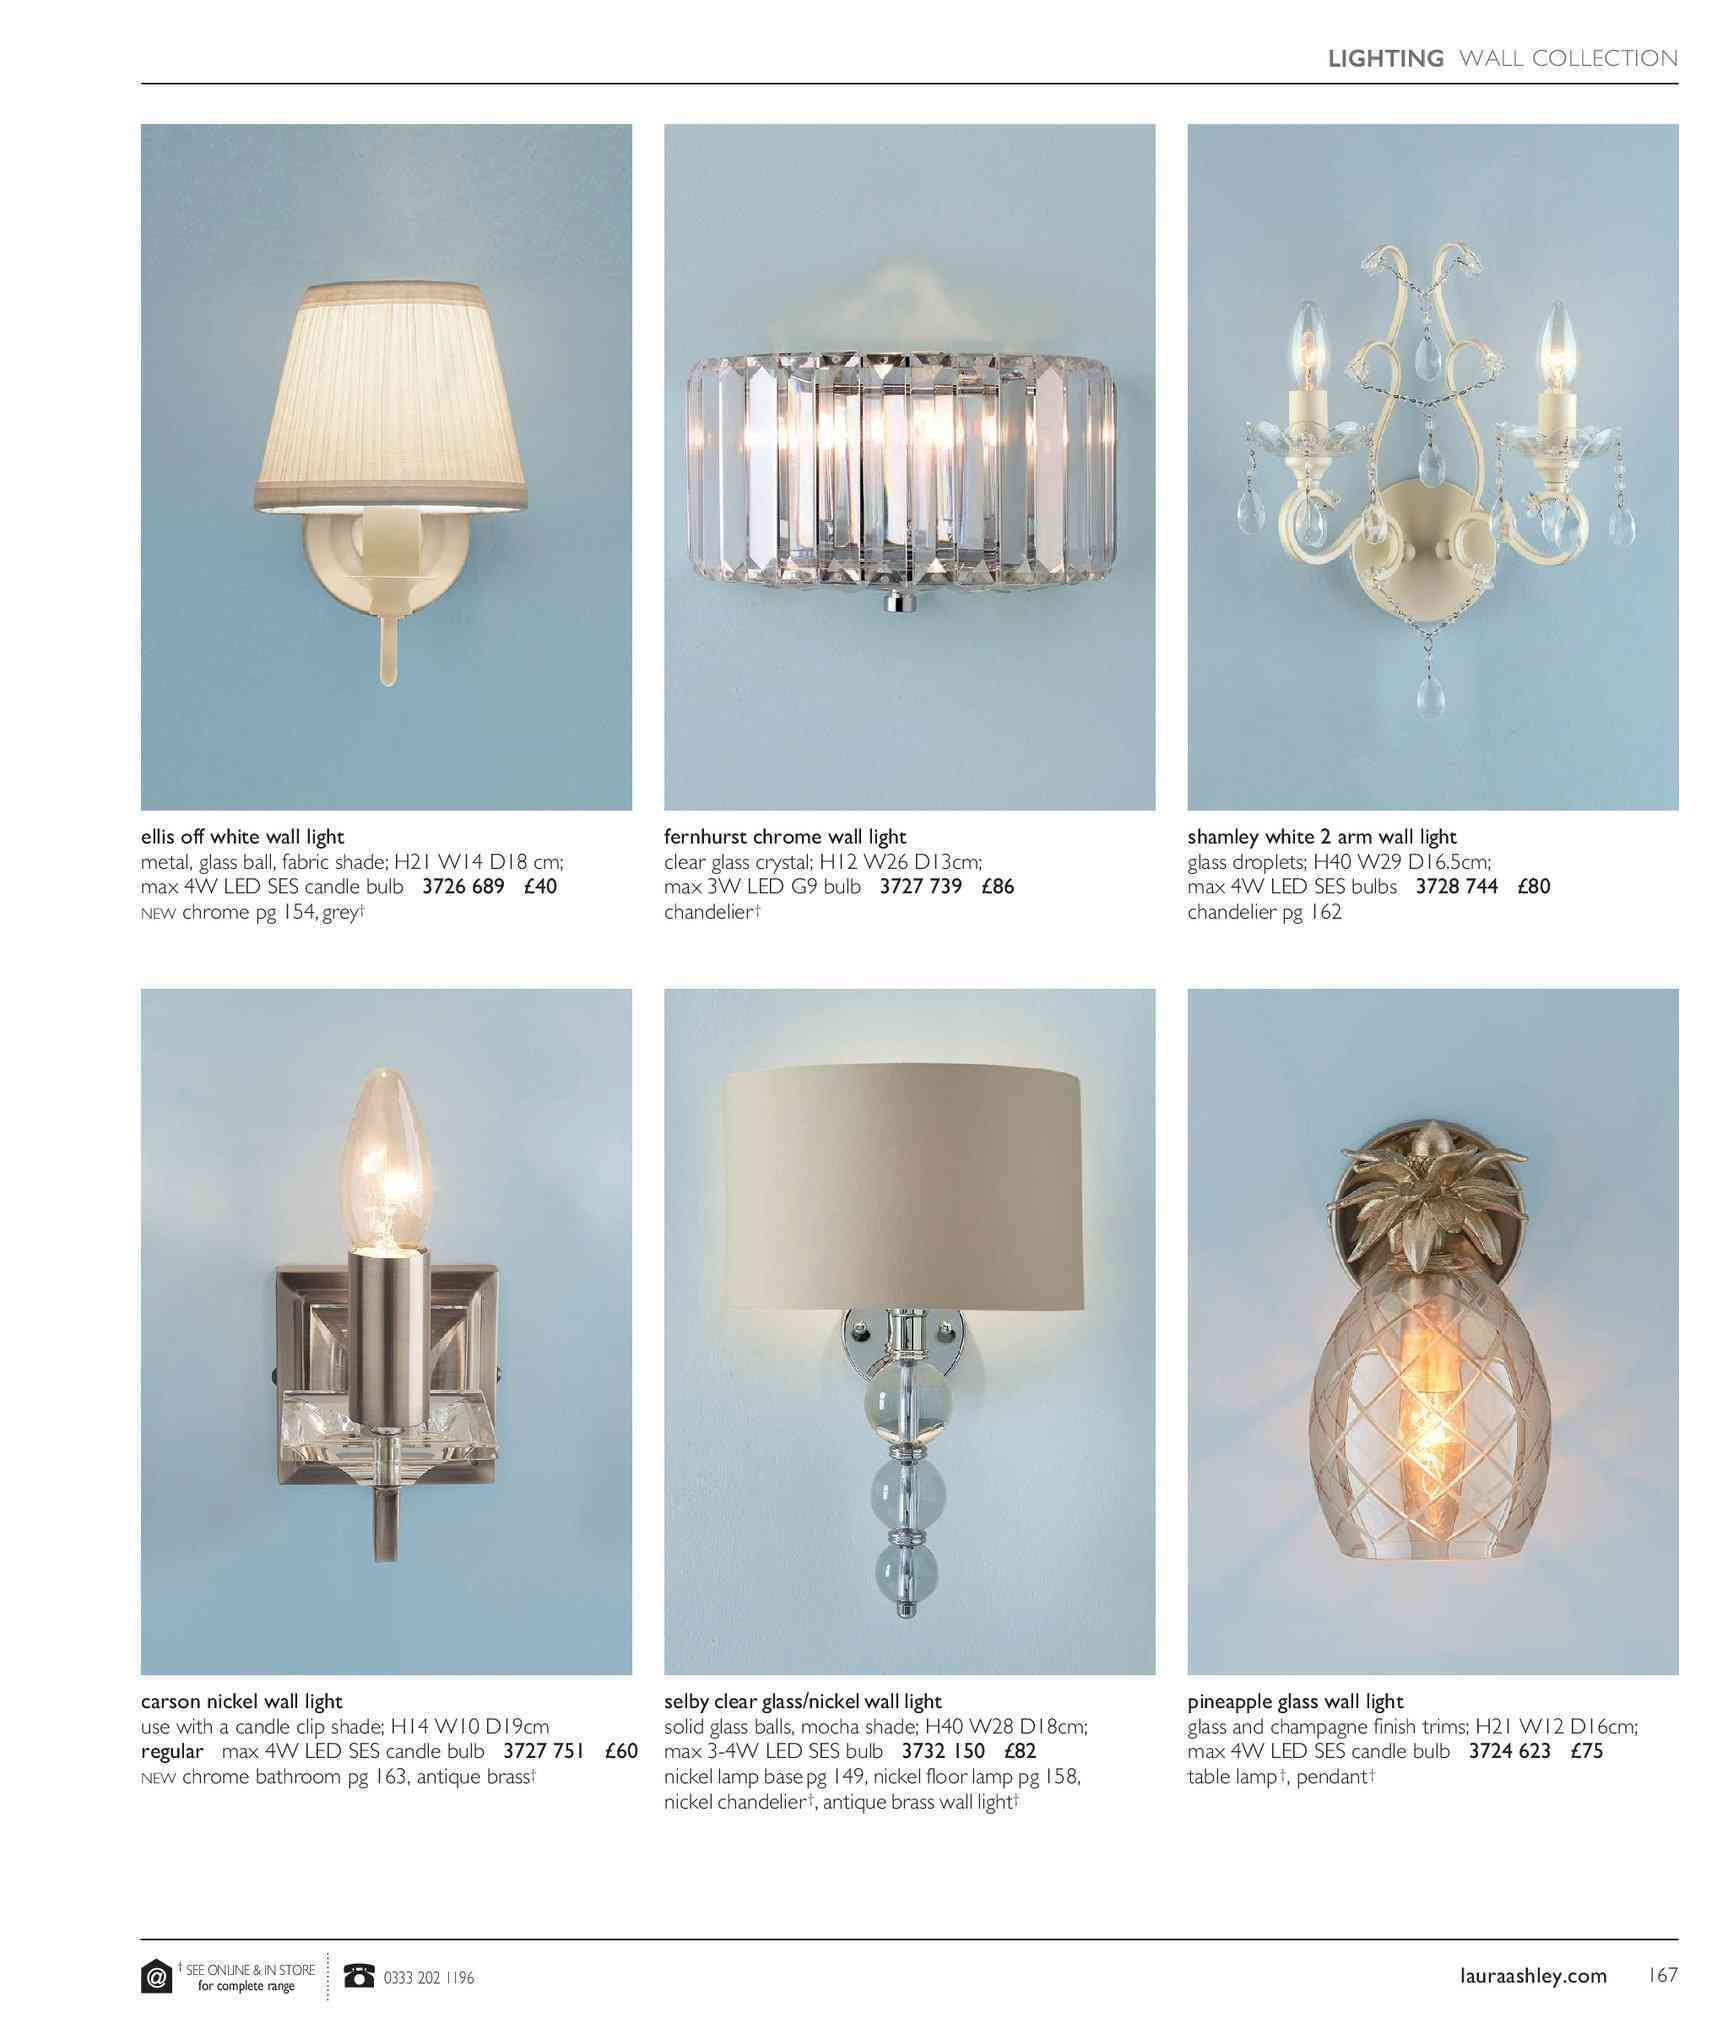 New Galaxy 2 Light Gold Finish Wall Sconce Lights Chandelier Wall Lamp with Glass Shade W16